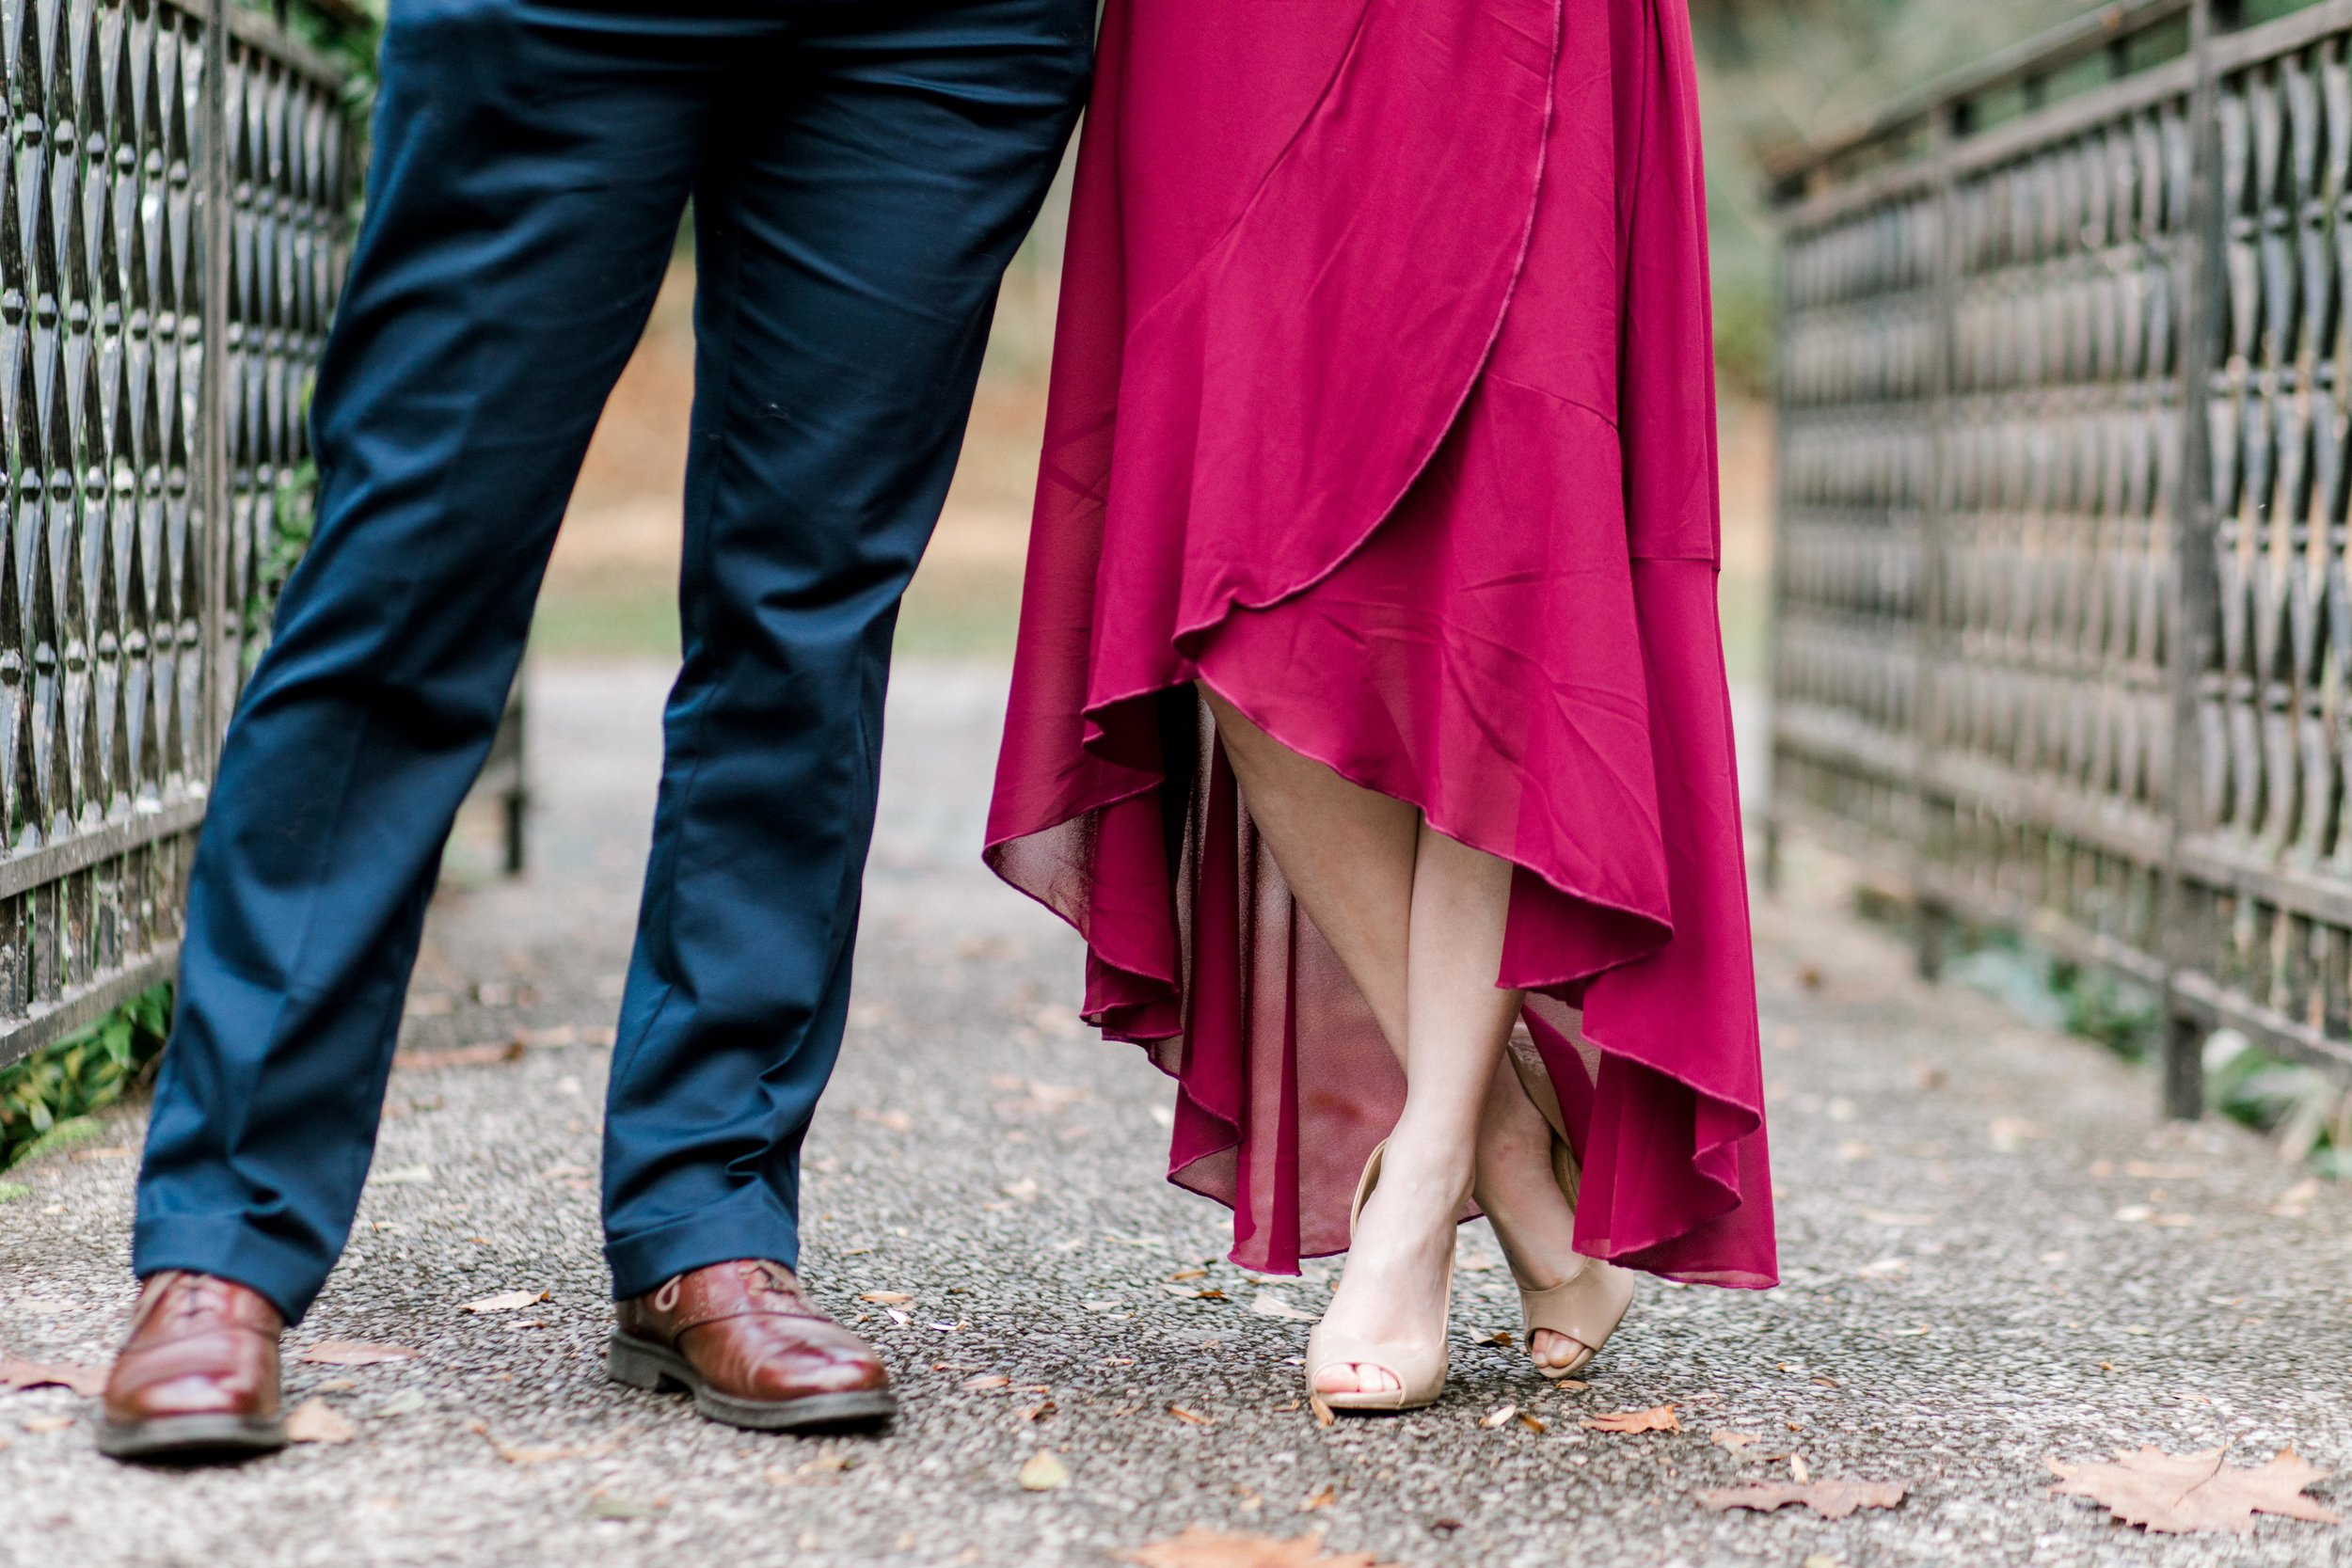 engagment cator woolford garden atlanta darian reilly photography-40.jpg